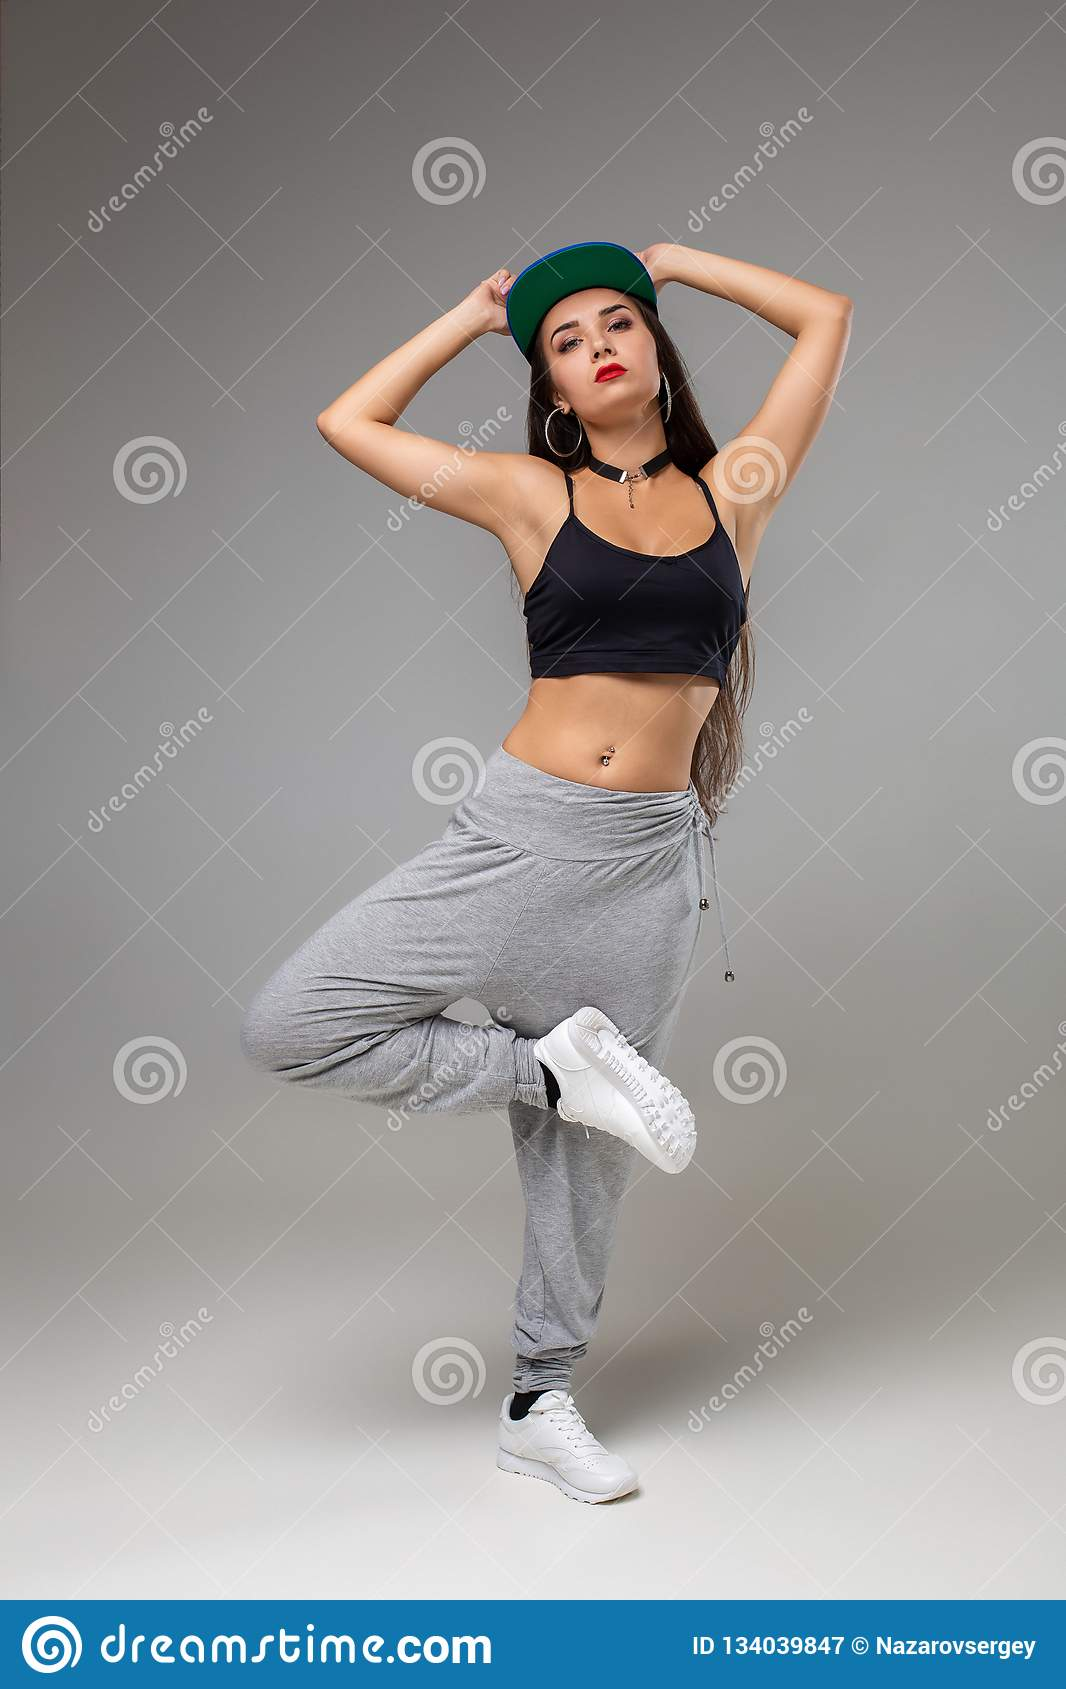 Modern Dancer Poses In Front Of The Gray Studio Background